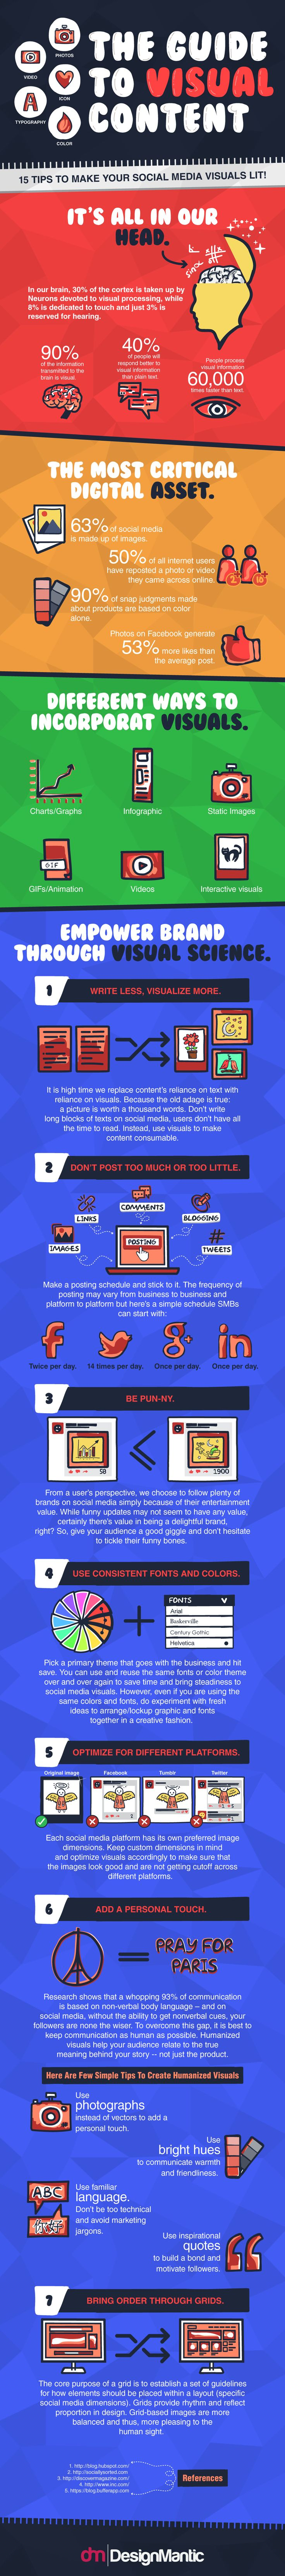 The Guide To Visual Content #contentmarketing